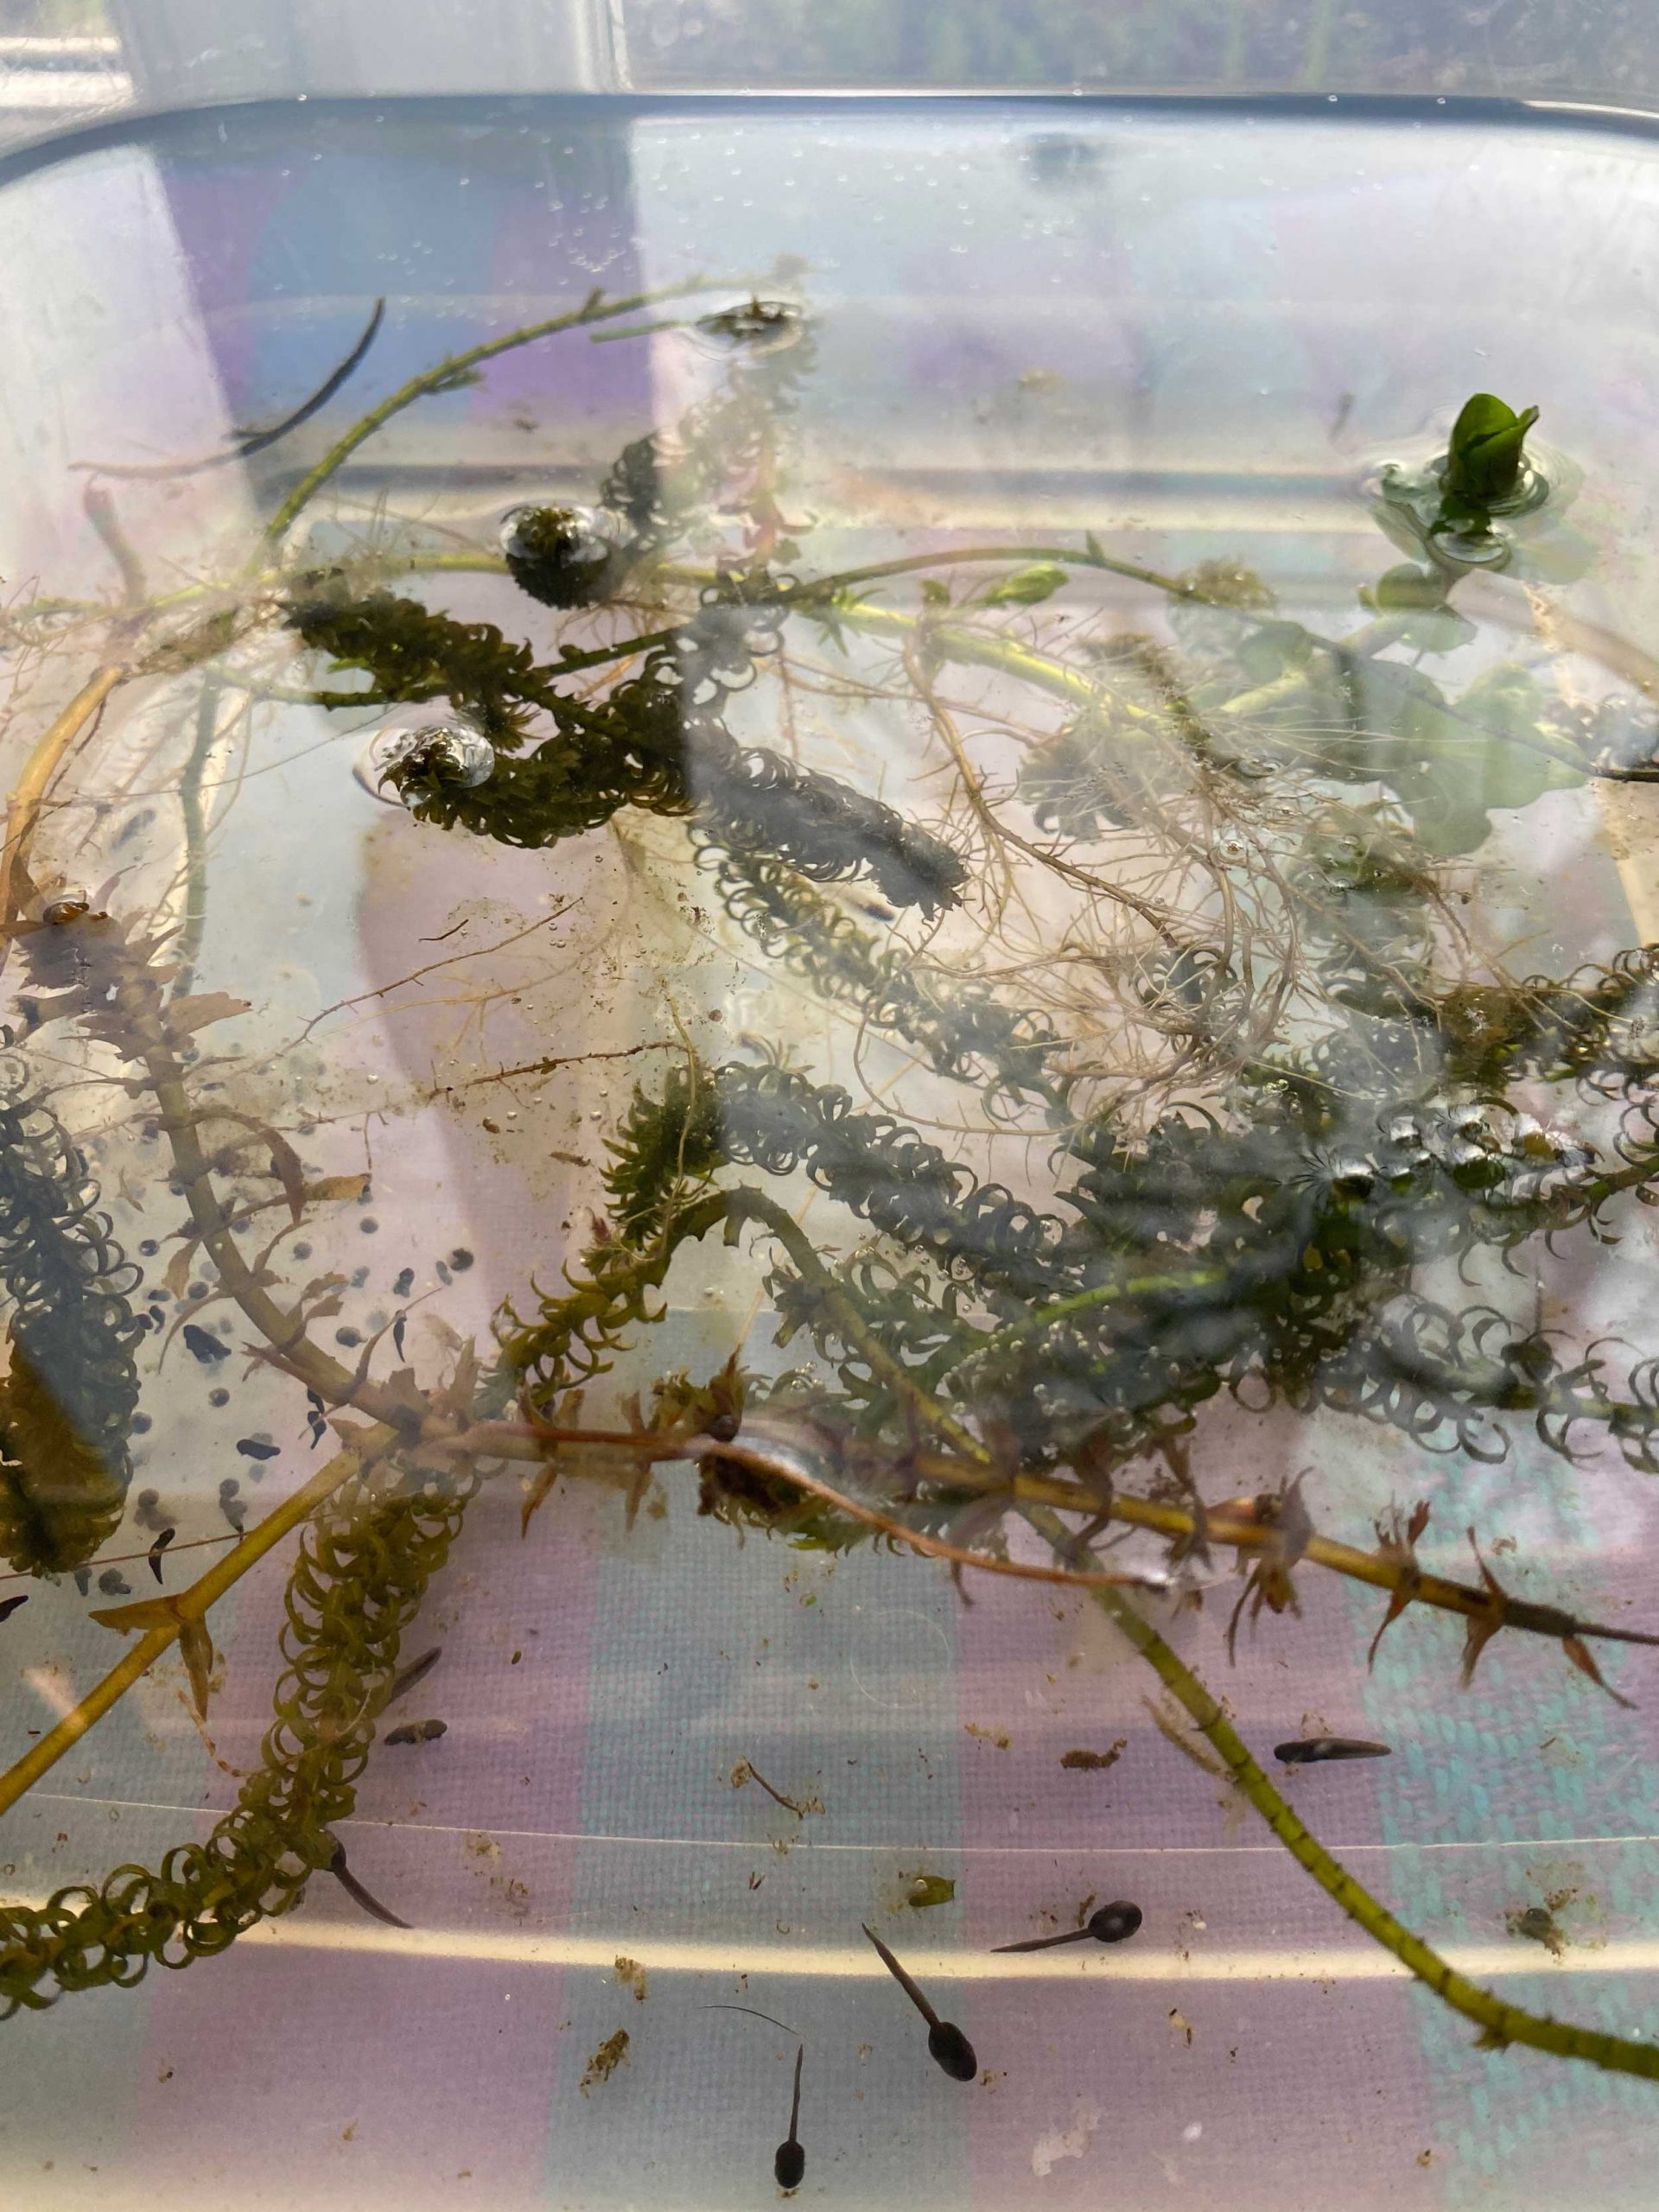 Year 3 Our newest members of the class are settling in well! After finding some local frog spawn, we are all enjoying watching them grow.